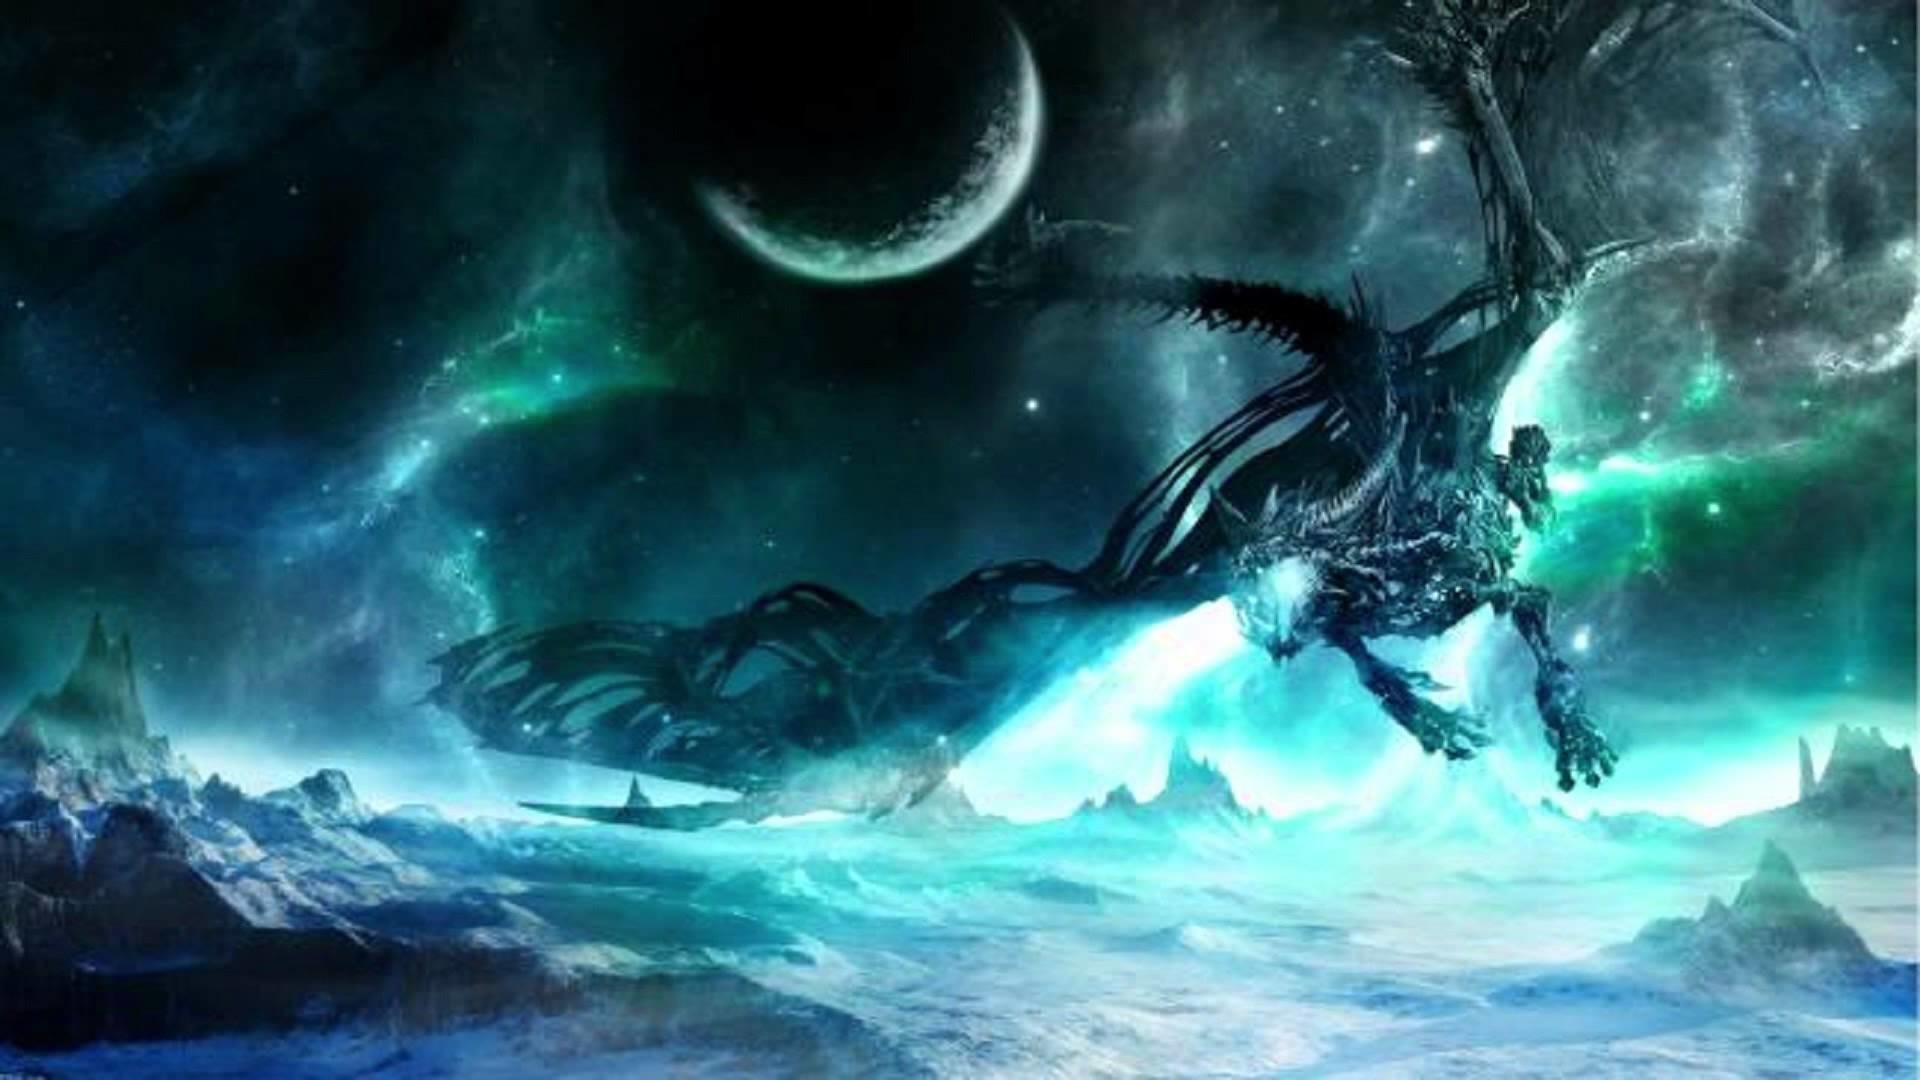 10 Top Blue Dragon Wallpapers 3d Full Hd 1920 1080 For Pc: Water Dragon Wallpaper (76+ Images